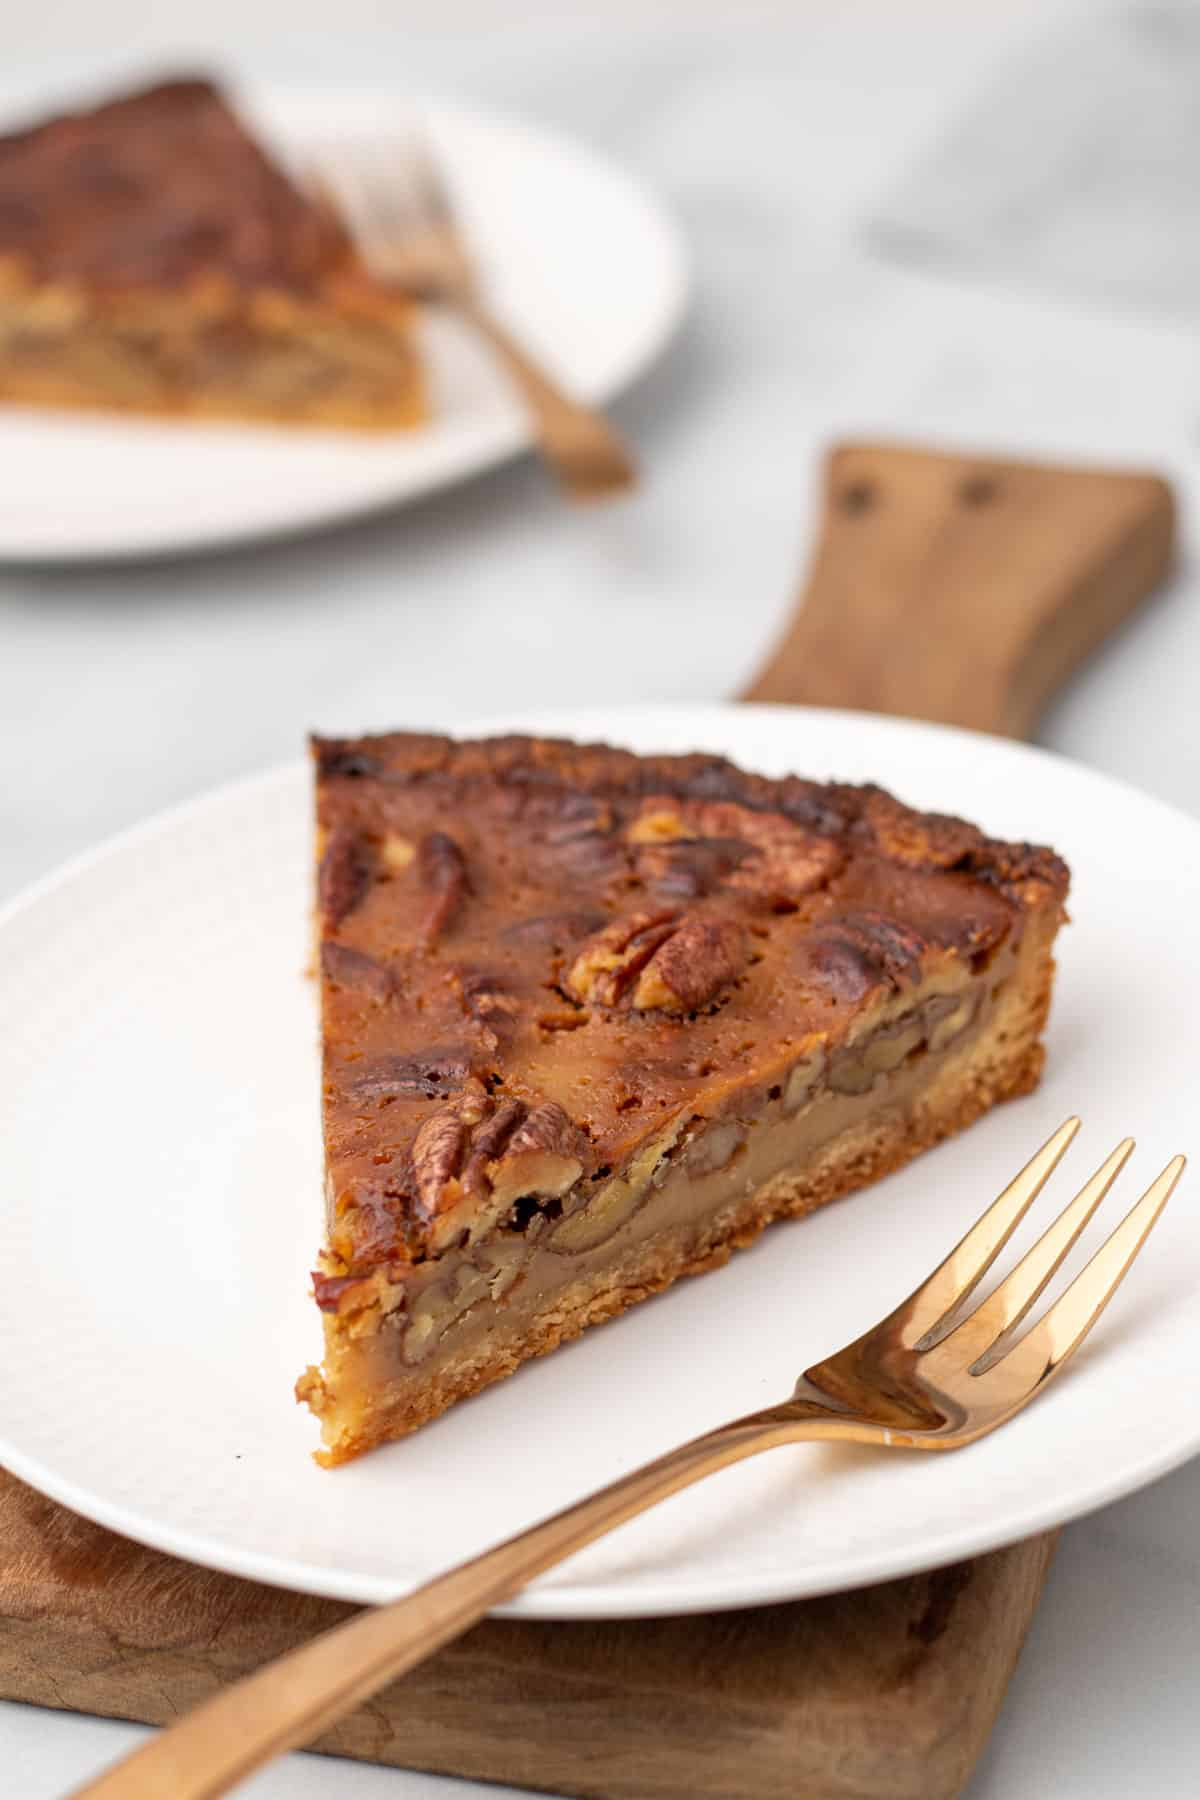 A slice of low carb pecan pie on a white plate with a gold fork, as seen from the side